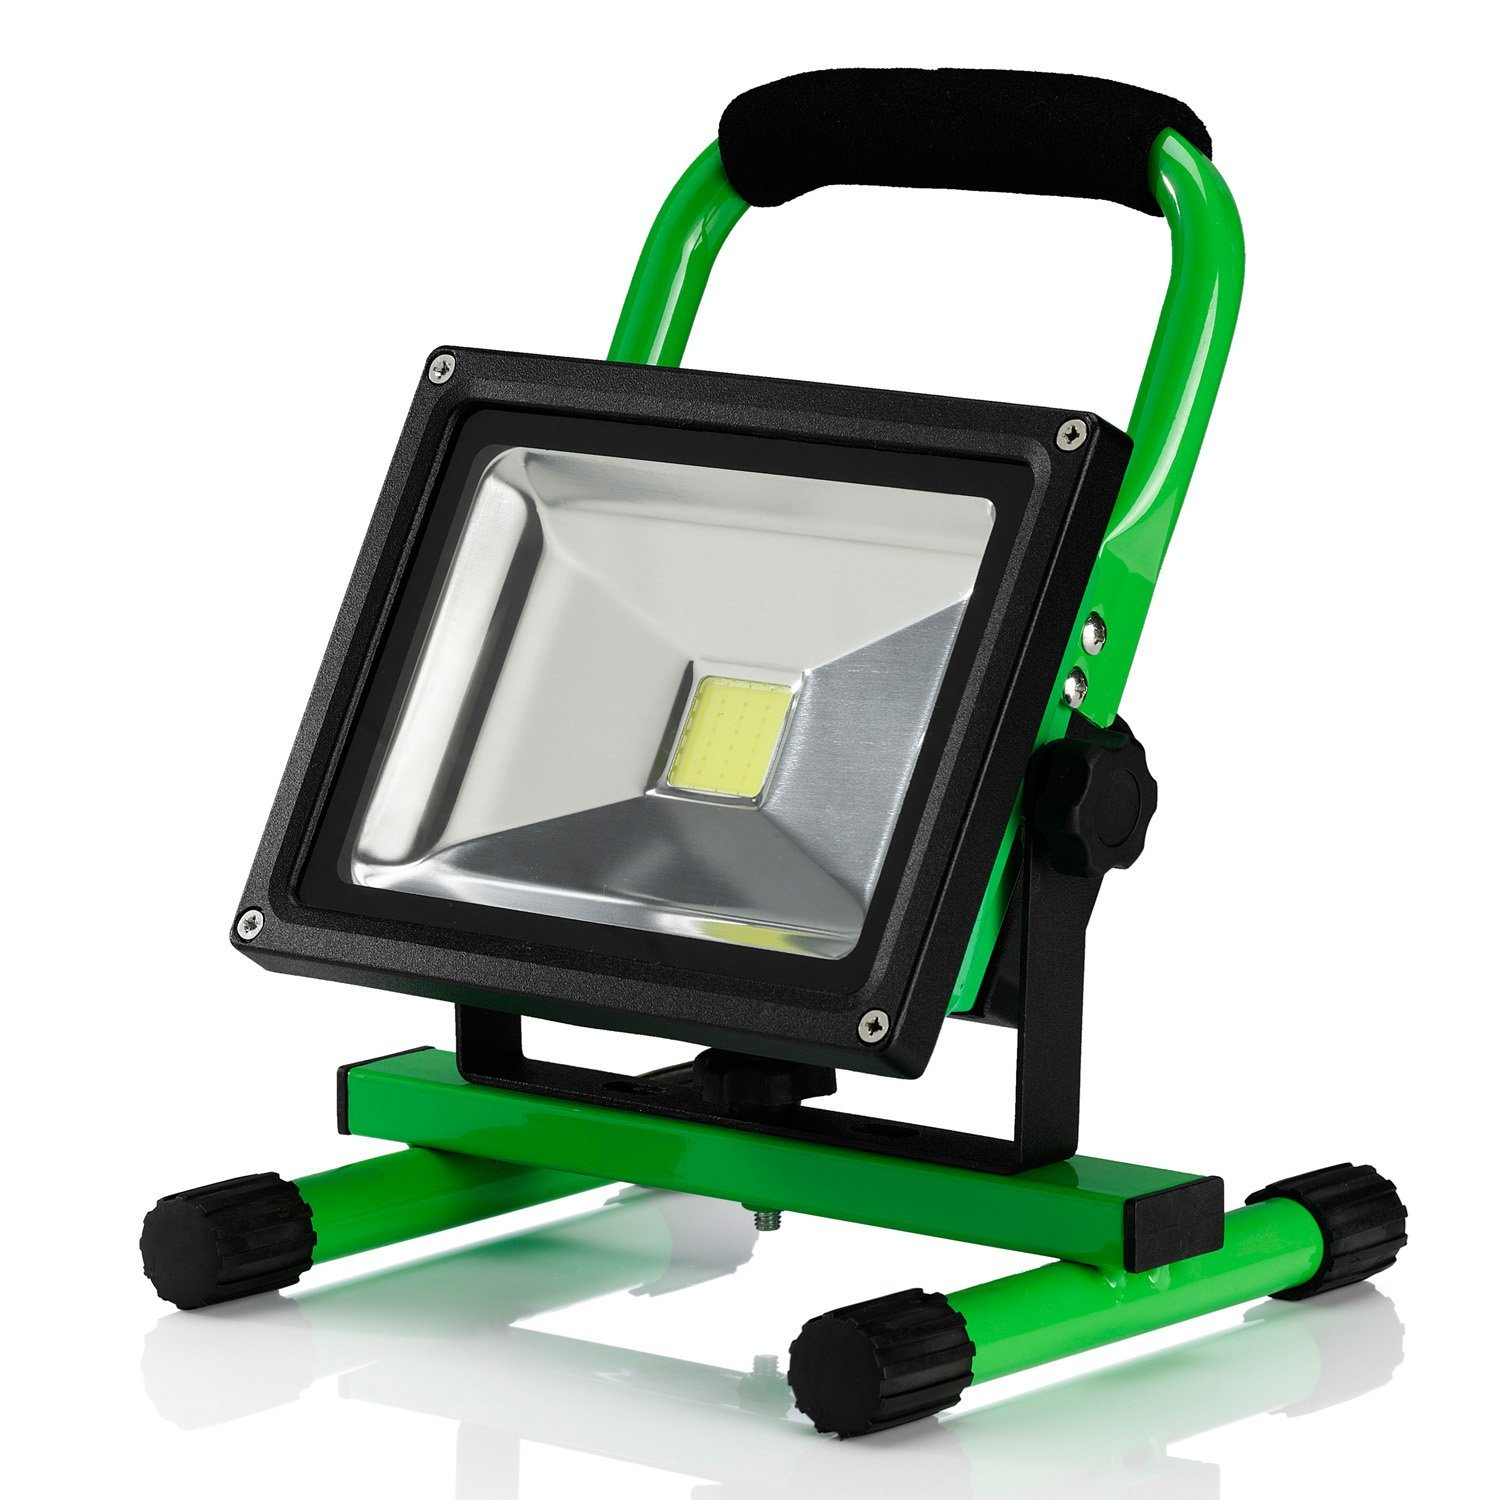 Led Flood Light Rechargeable 20w: Auraglow 20w LED Rechargeable Cordless Work Flood Light